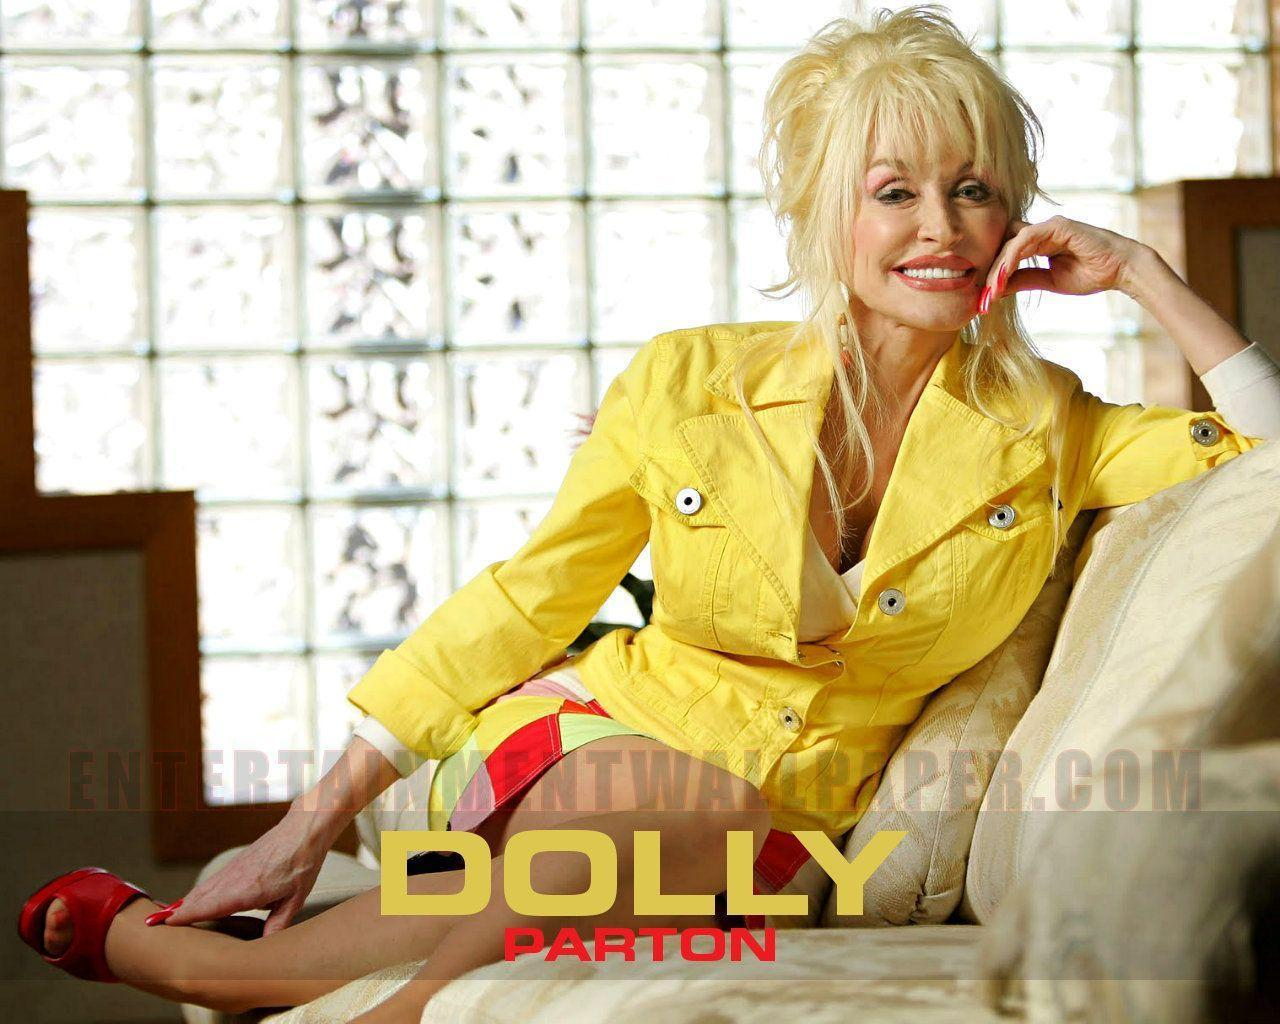 dolly parton wallpaper | Style Favor – Photos, pictures and ...